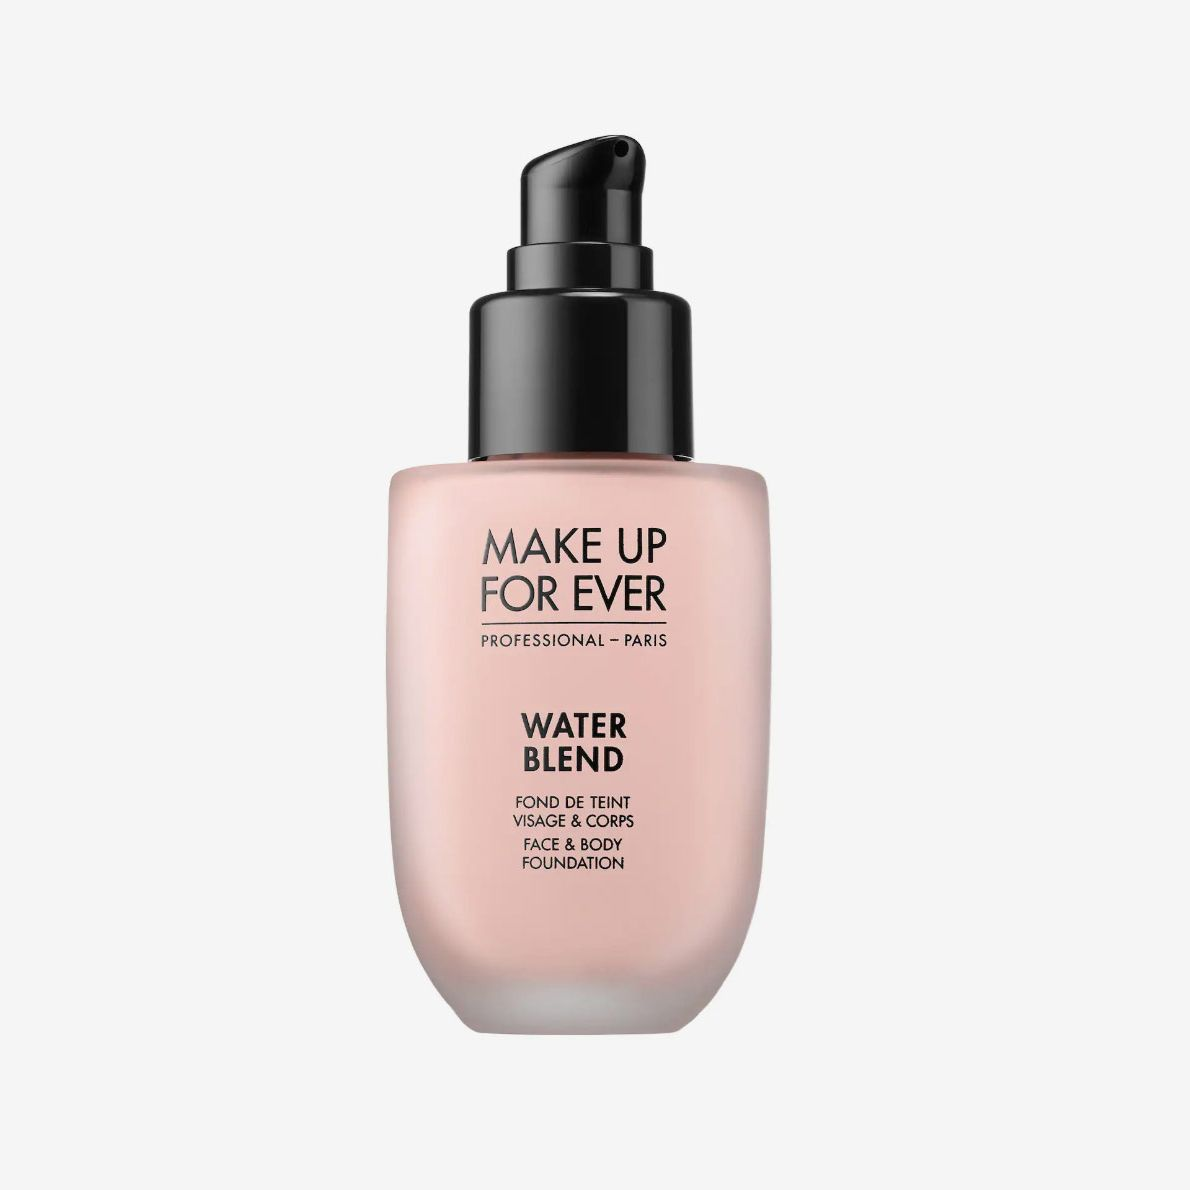 11 Best Foundations For Mature Skin 2021 The Strategist New York Magazine